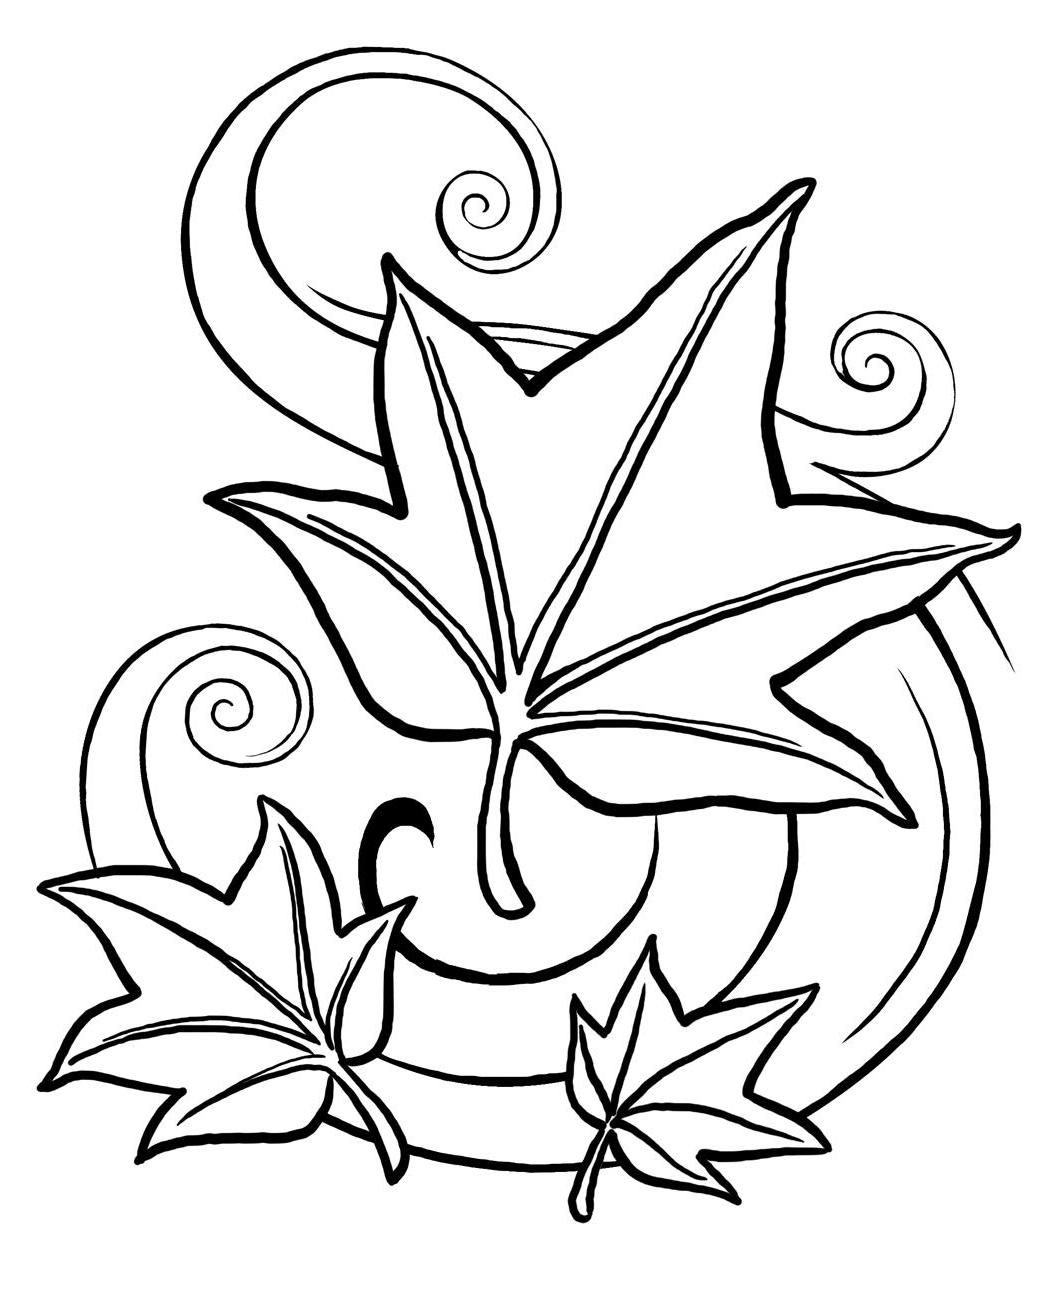 Free coloring pages for autumn - Autumn Leaves Coloring Page Free Printable Coloring Pages